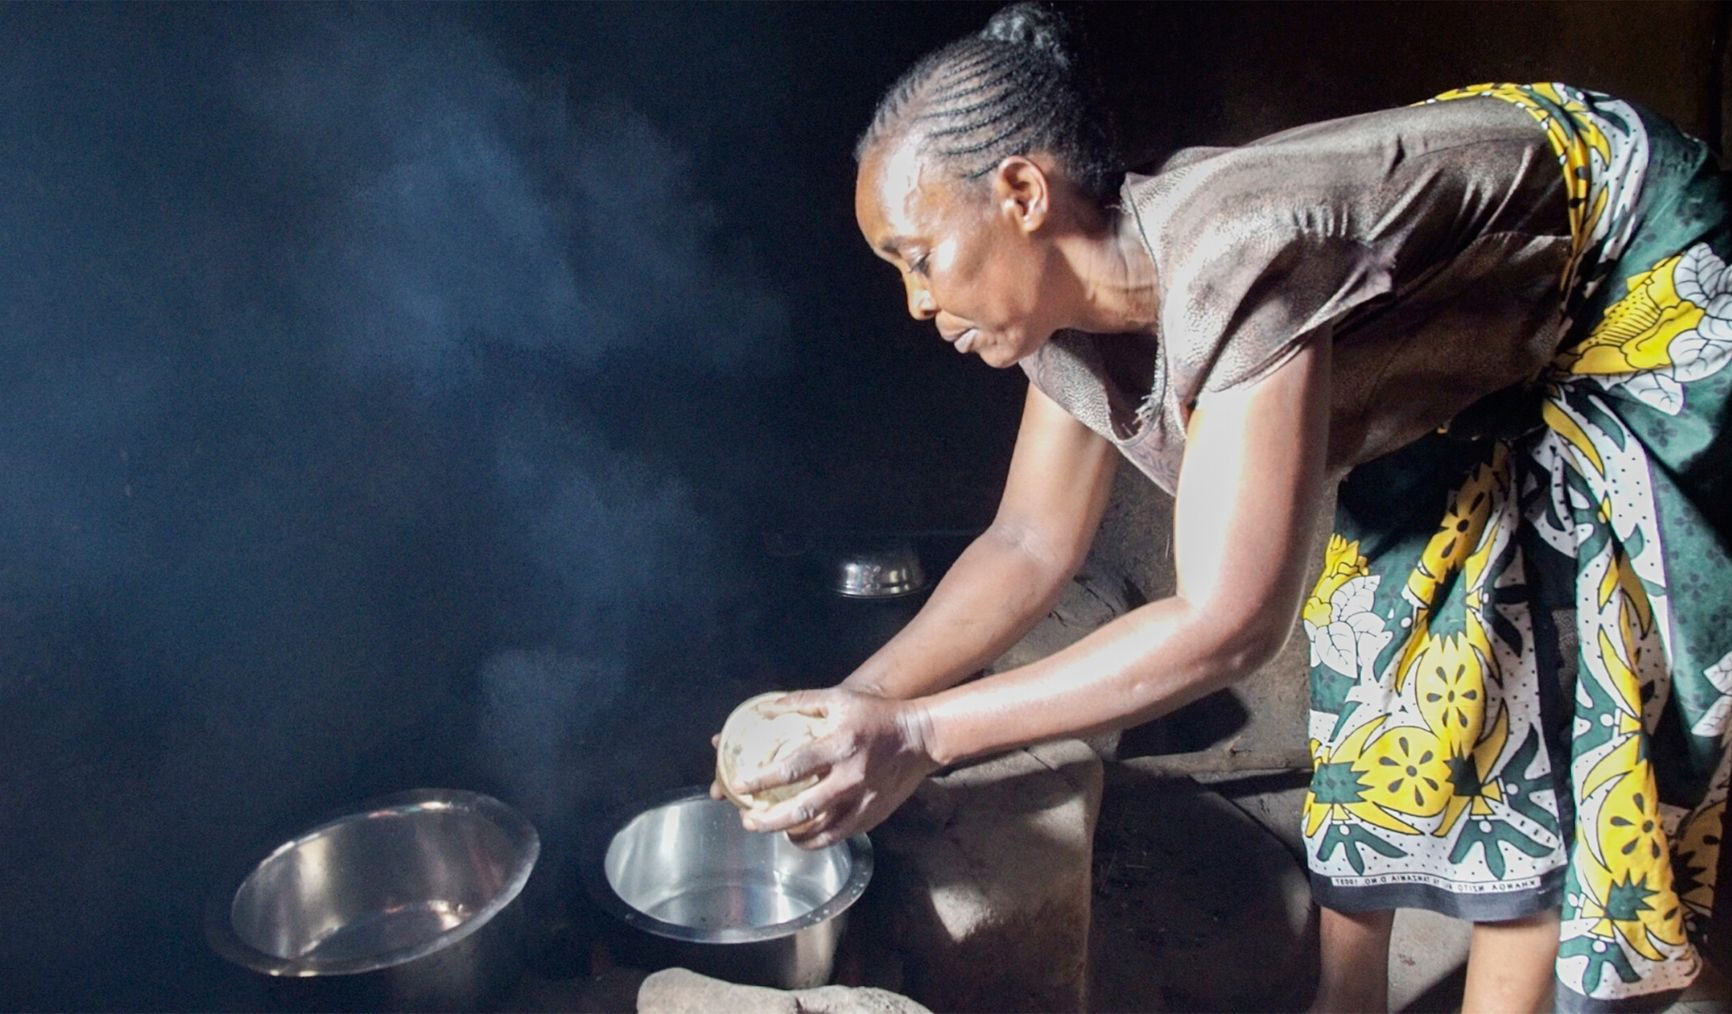 Traditional cooking methods are putting women at risk